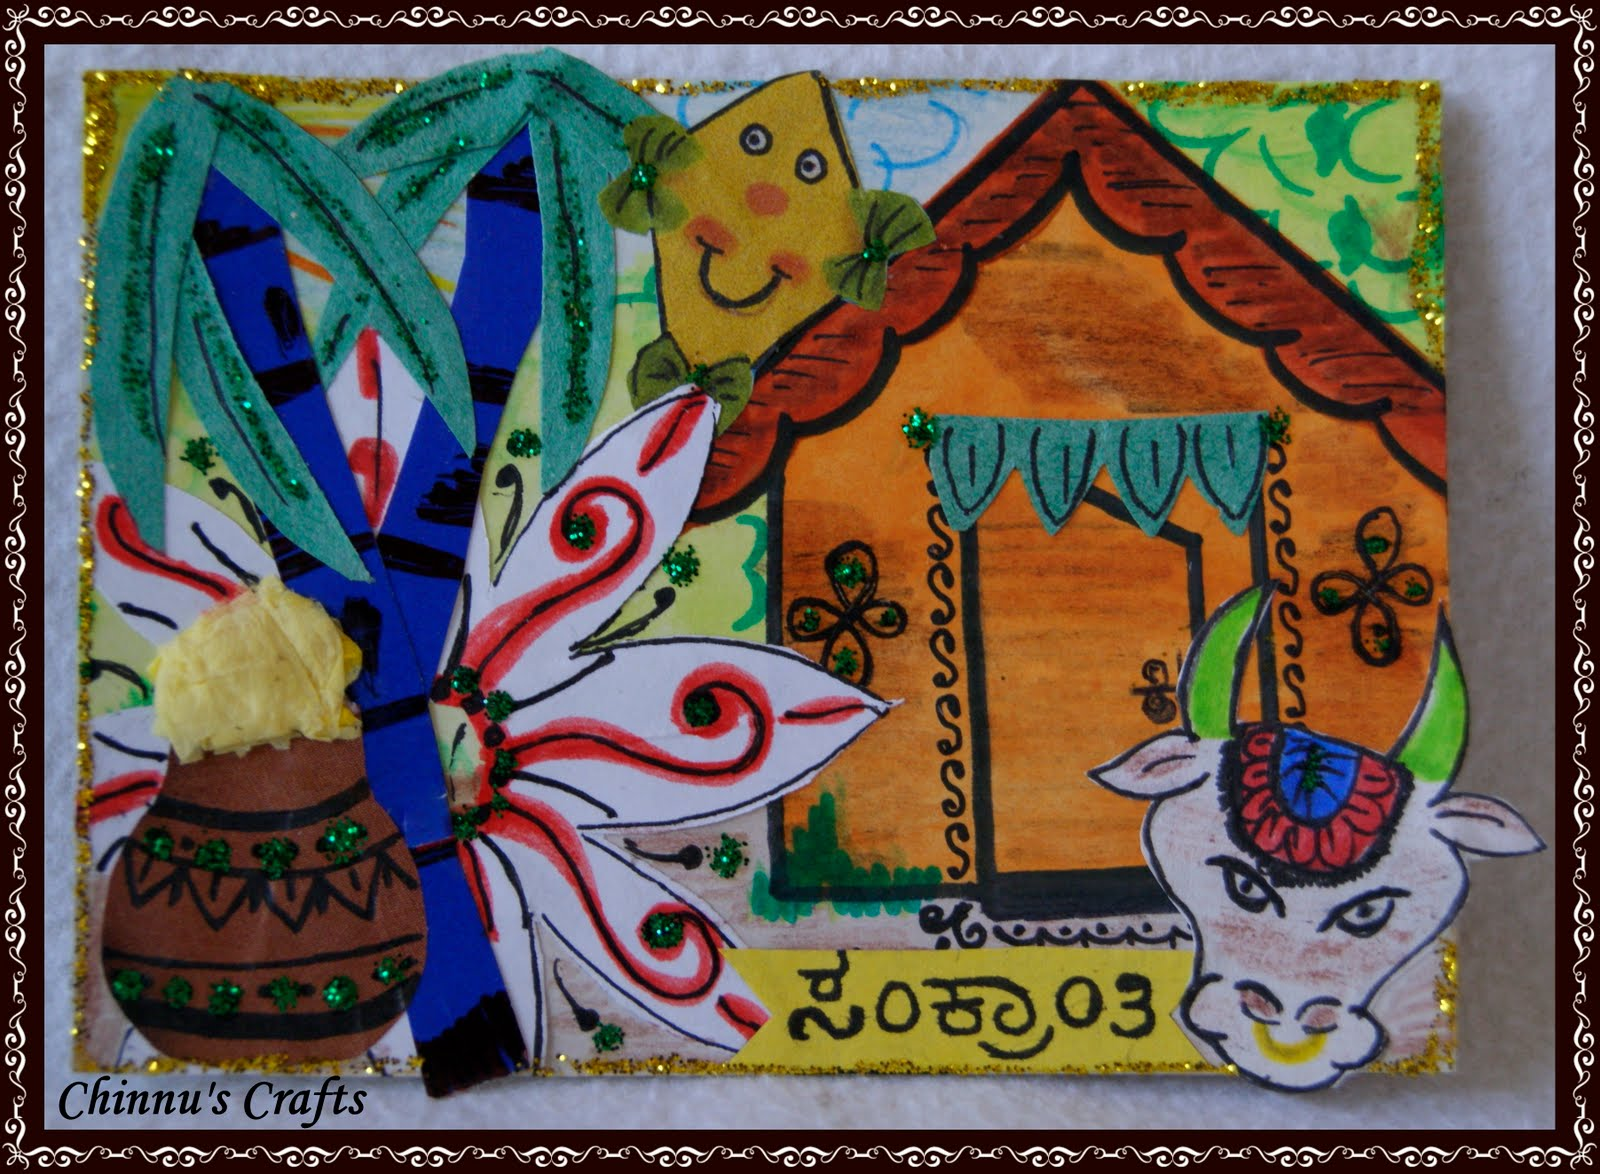 Sankranti card - Ultimate guide to Sankranti Customs, Crafts & Recipe Ideas - Makar Sankranti is the Harvest festival of the Hindus. Read about the significance of Makar Sankranti, the traditions and rituals of this festival - Bornahan, Lohri. Find out why it is celebrated? the traditional recipes - Til Gul, Pongal, Kite festival, Kite crafts to keep kids involved and informed in a fun way.